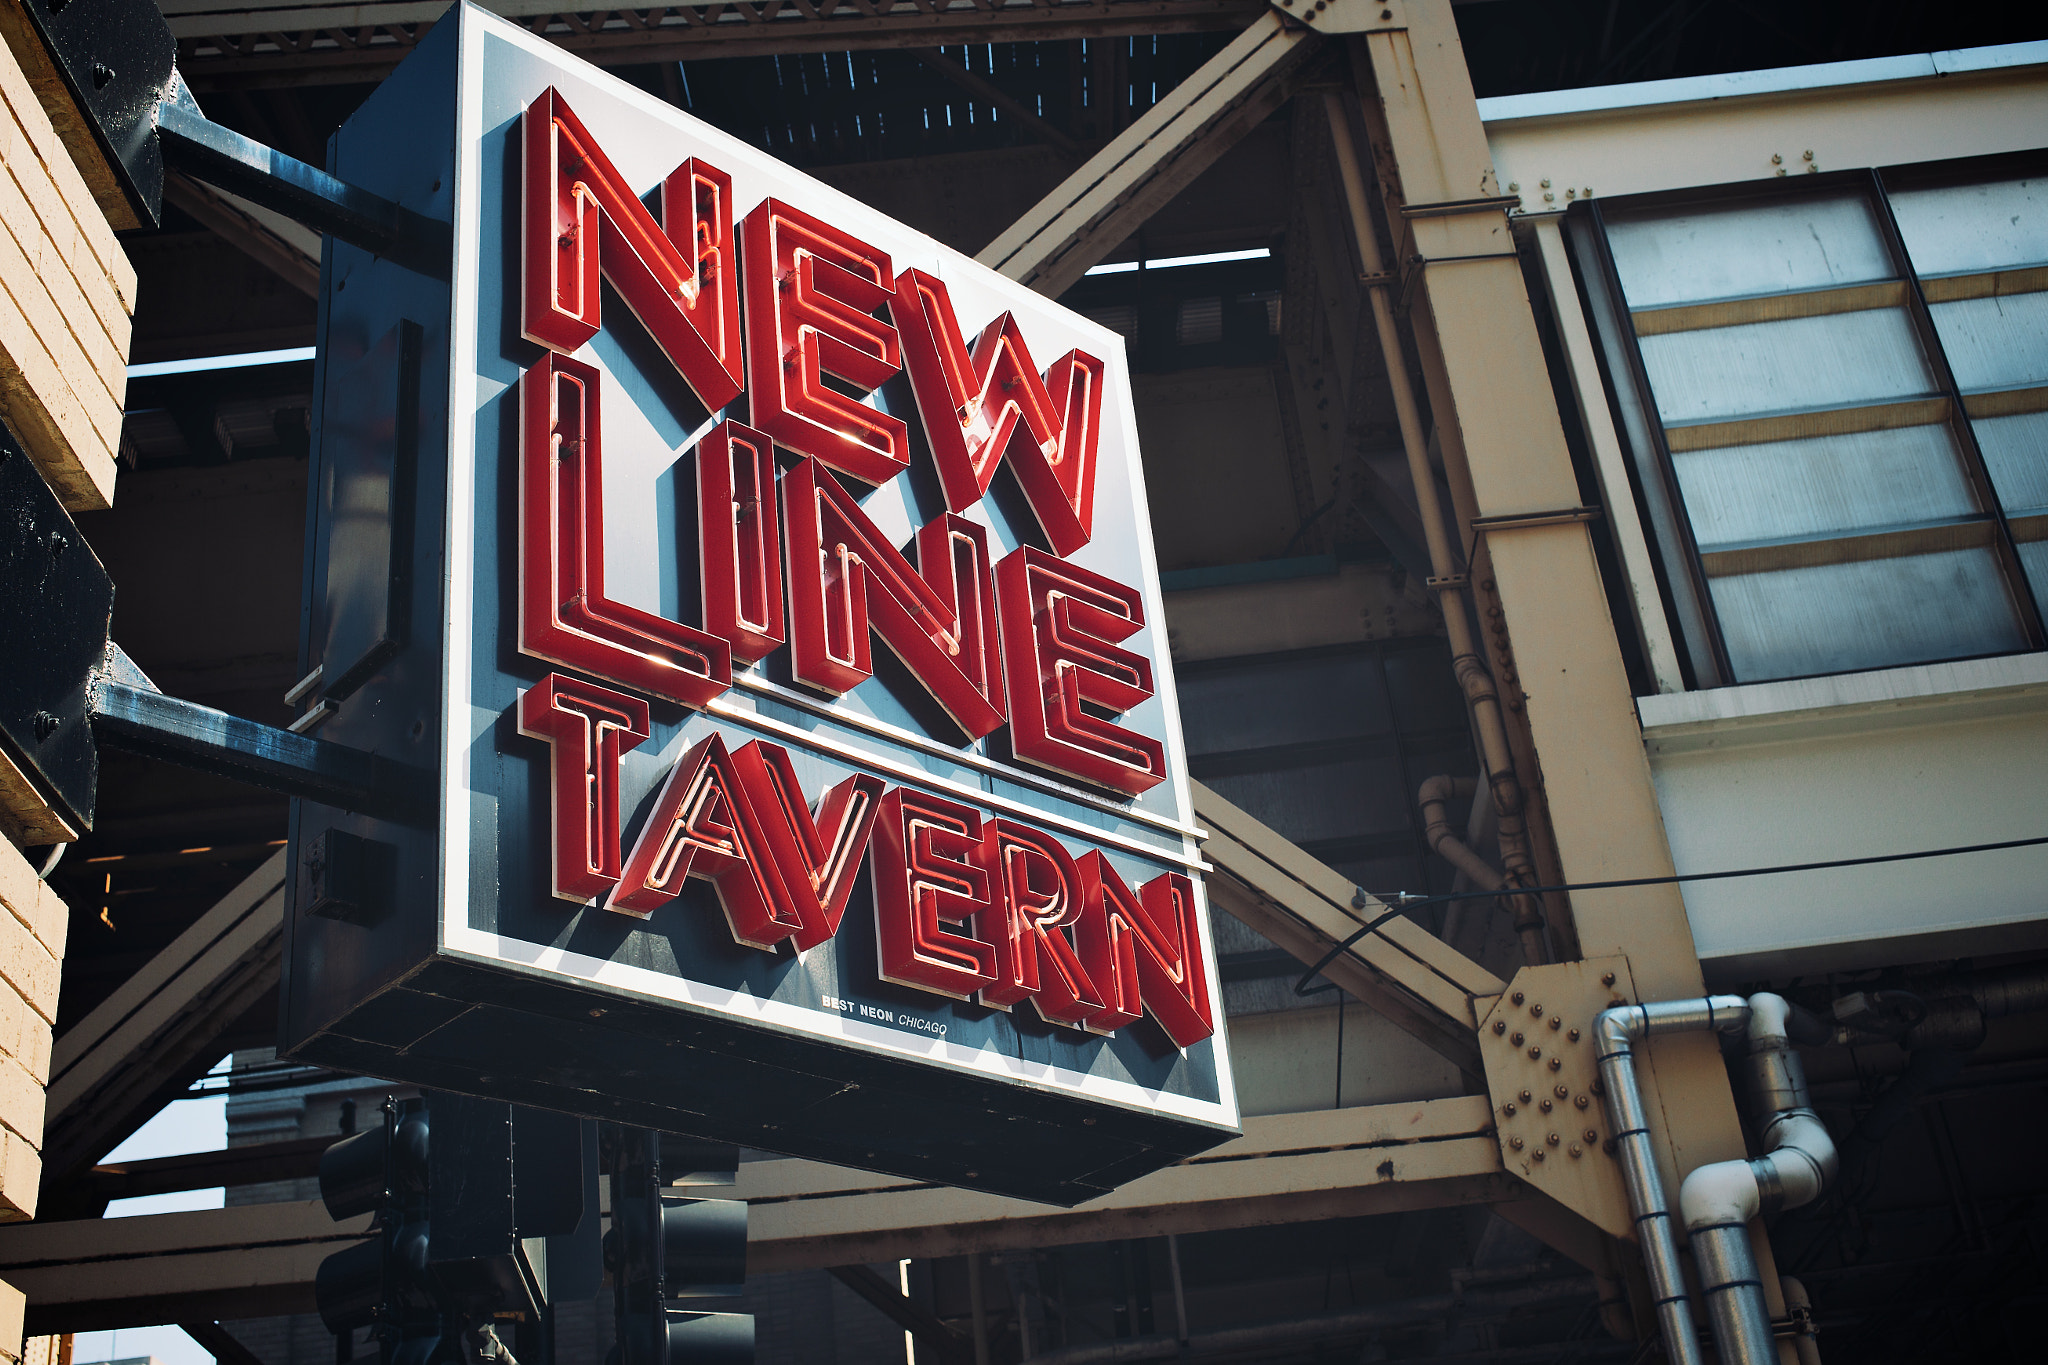 Photograph New Line Tavern by Jonathan Robson on 500px